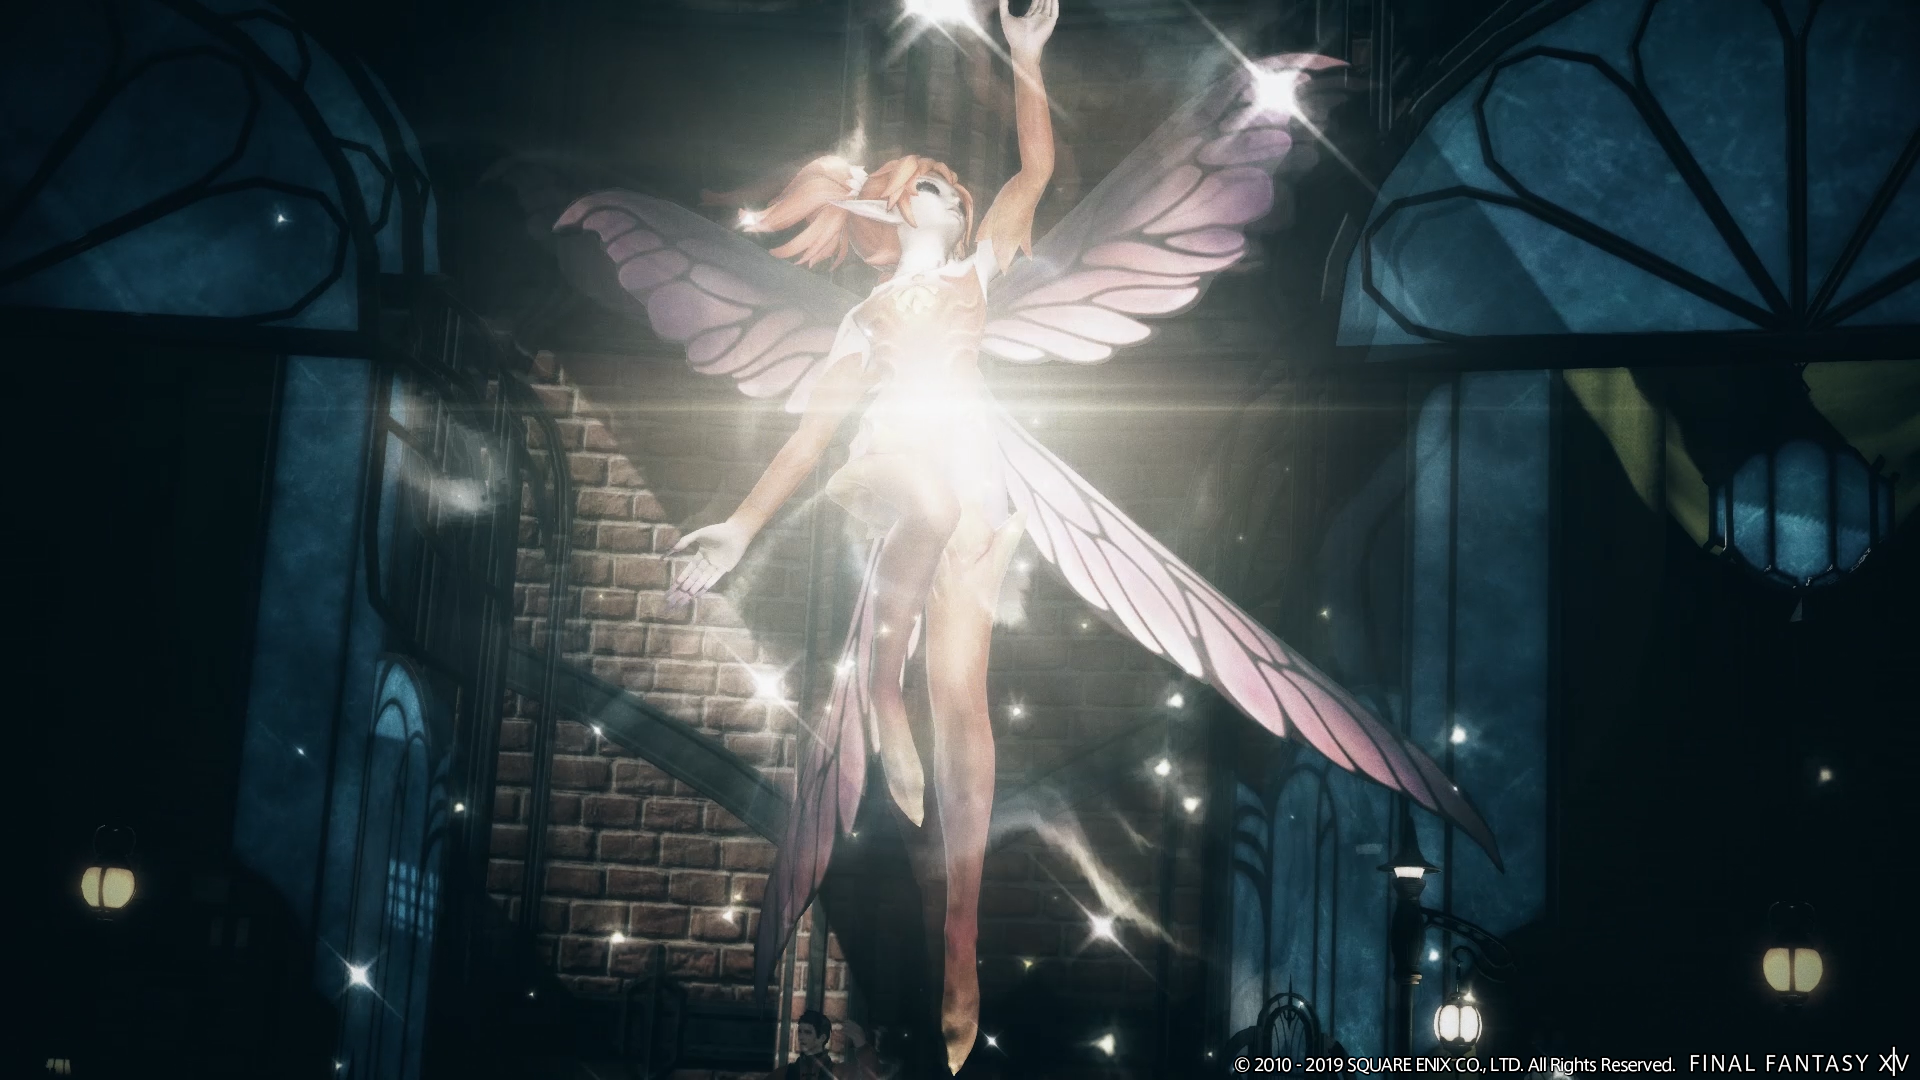 Final Fantasy XIV: Shadowbringers' Twist Is a Total 180